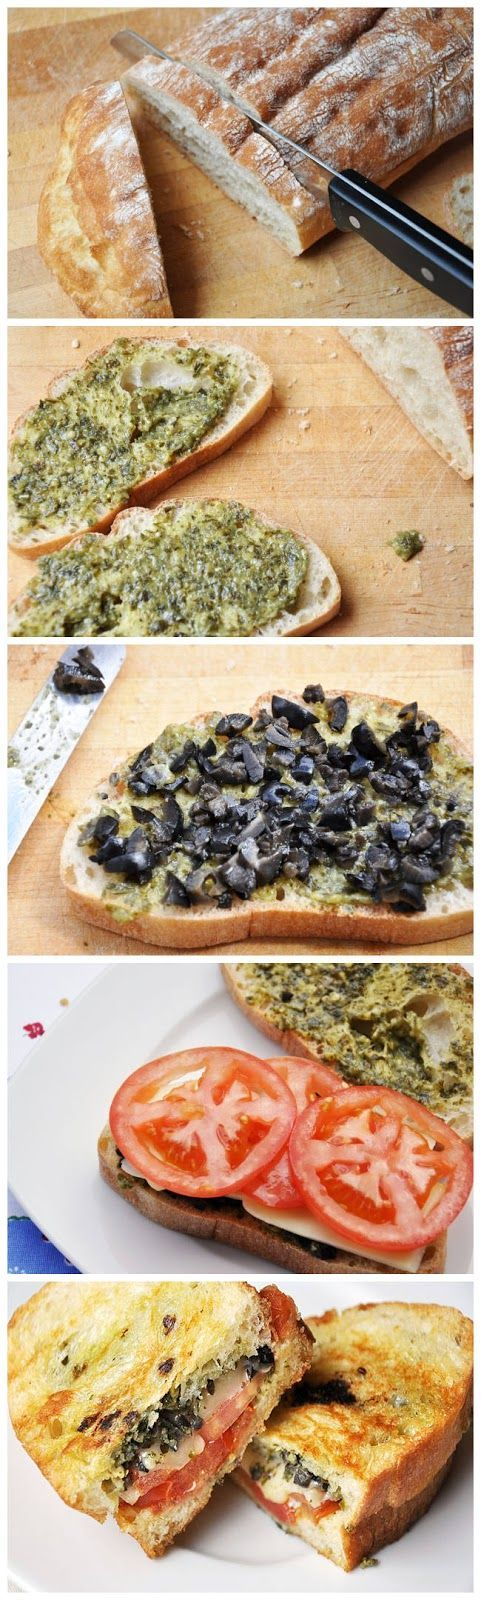 Pesto, Olives & Tomato Grilled Cheese with some fresh or herb goat cheese will burst flavors with every mouthful.